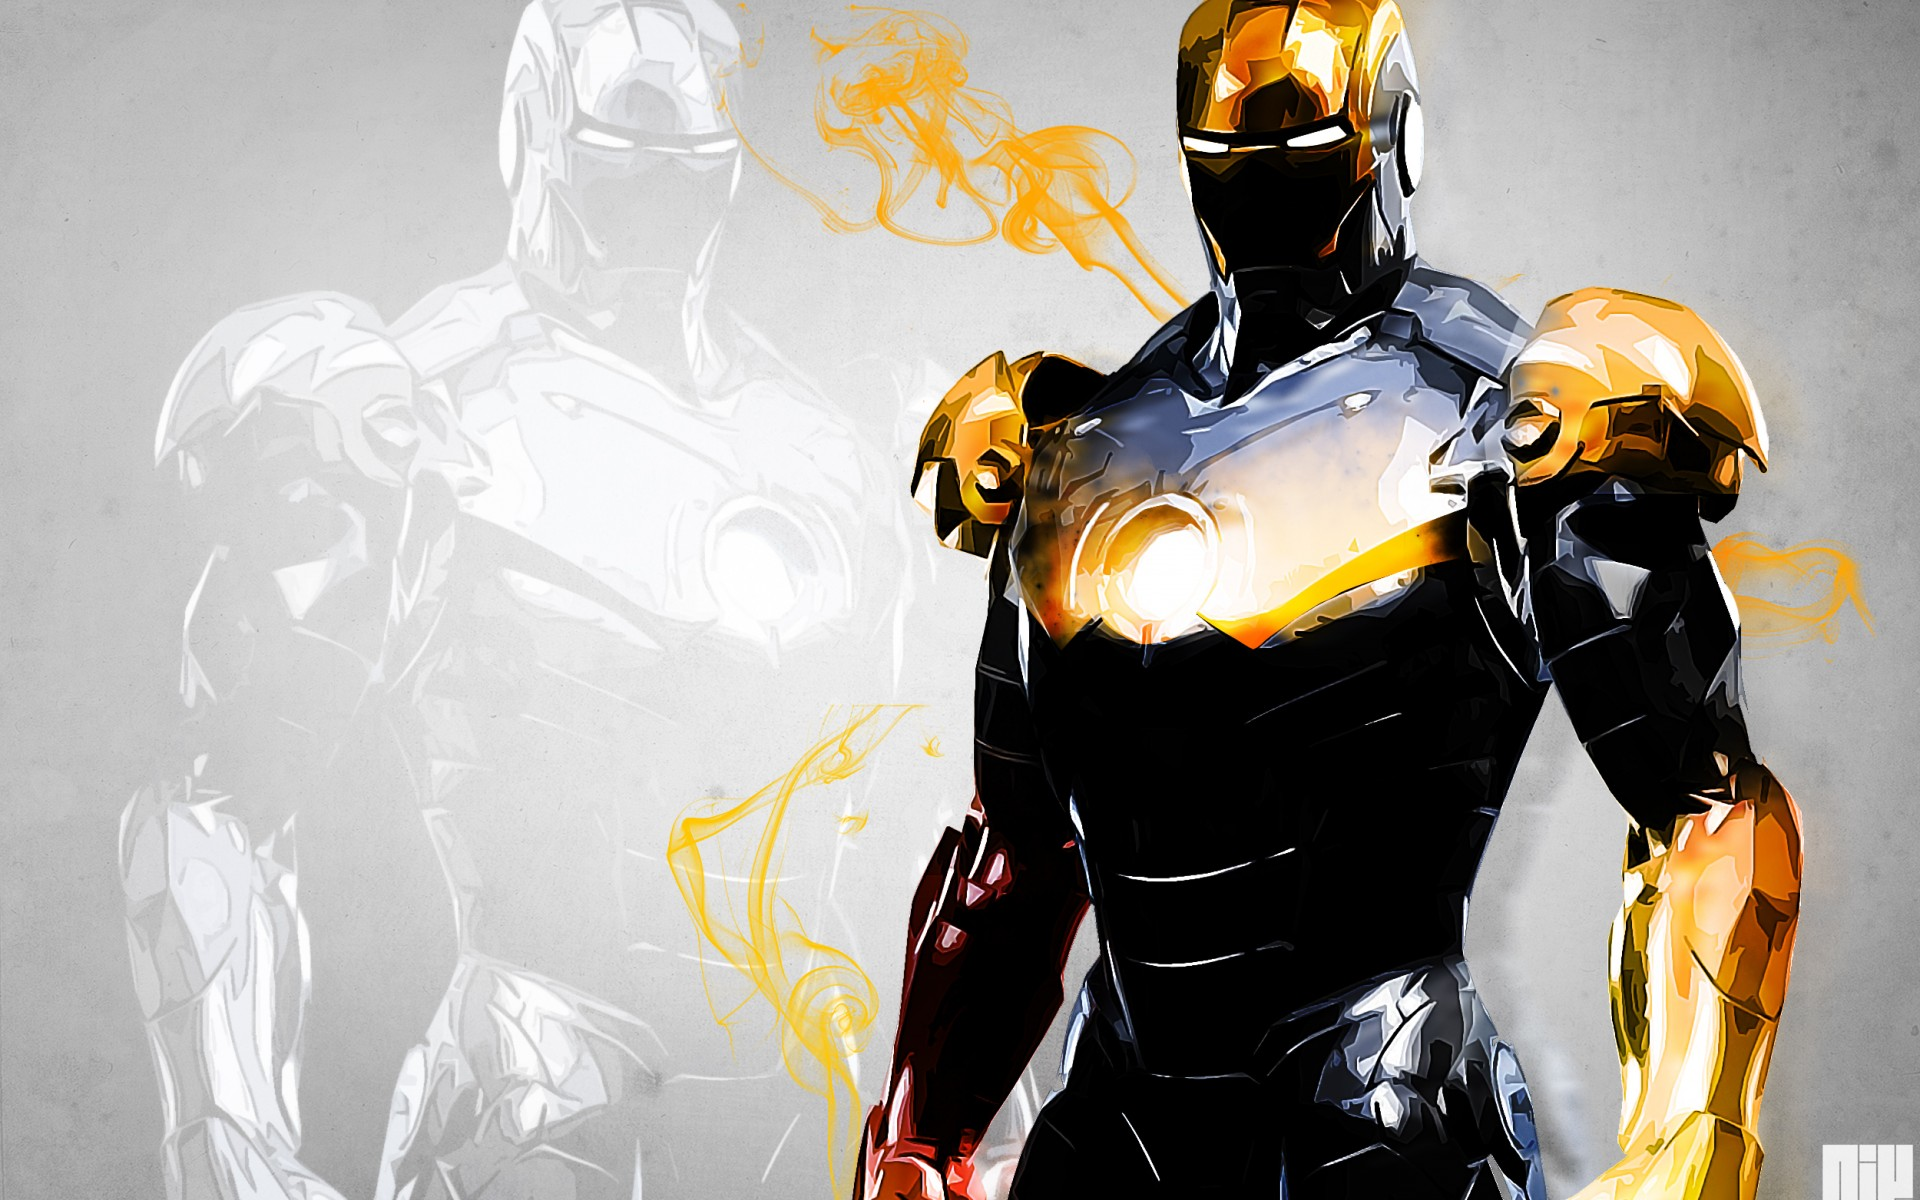 iron man marvel comics superhero wallpaper background 1920x1200